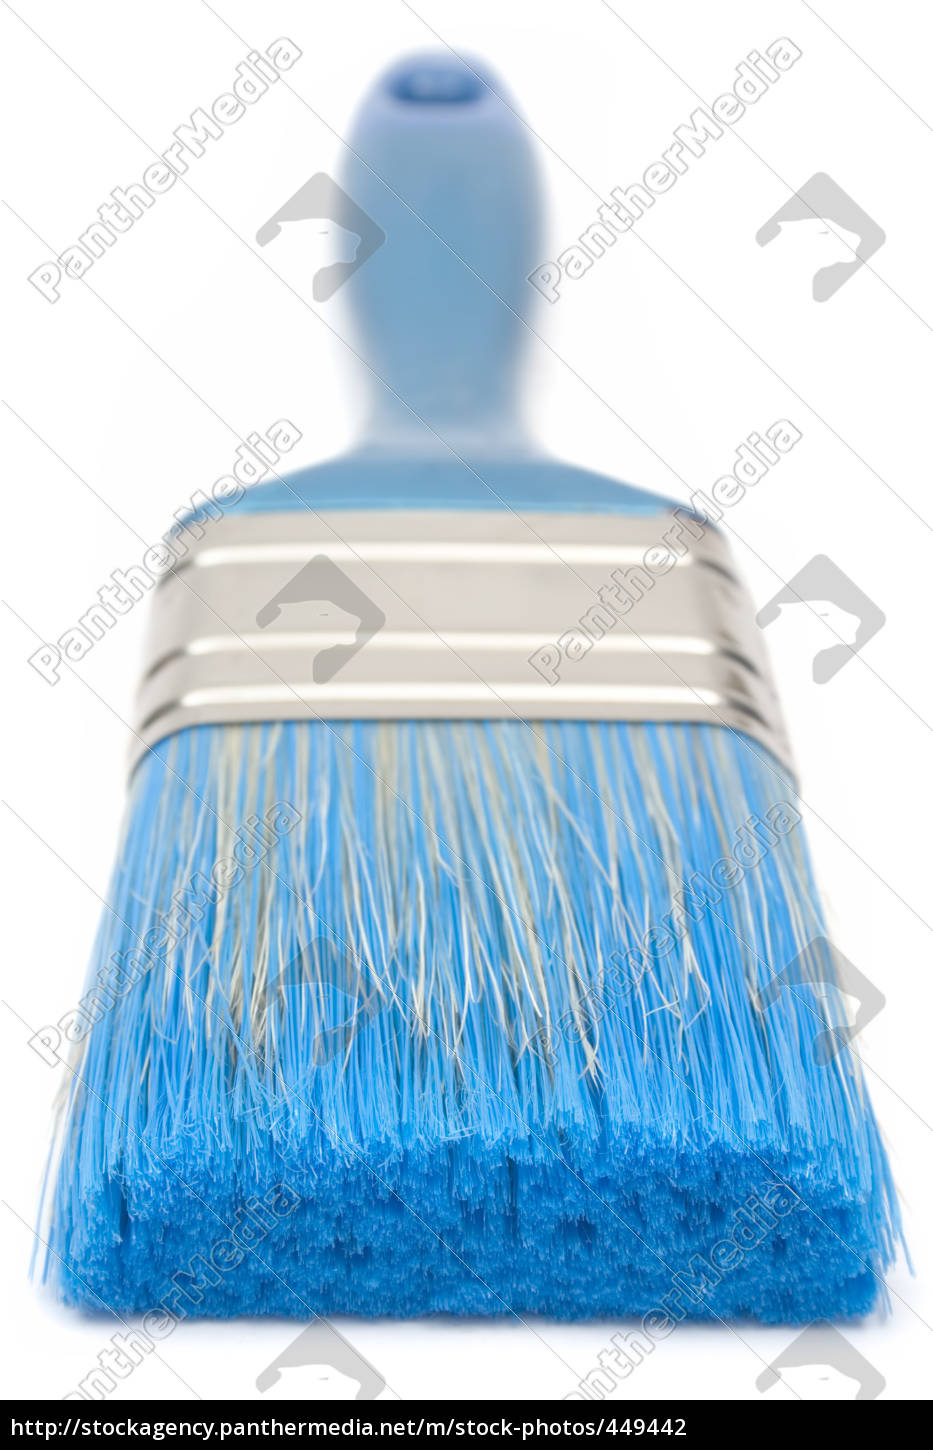 blue, brush - 449442